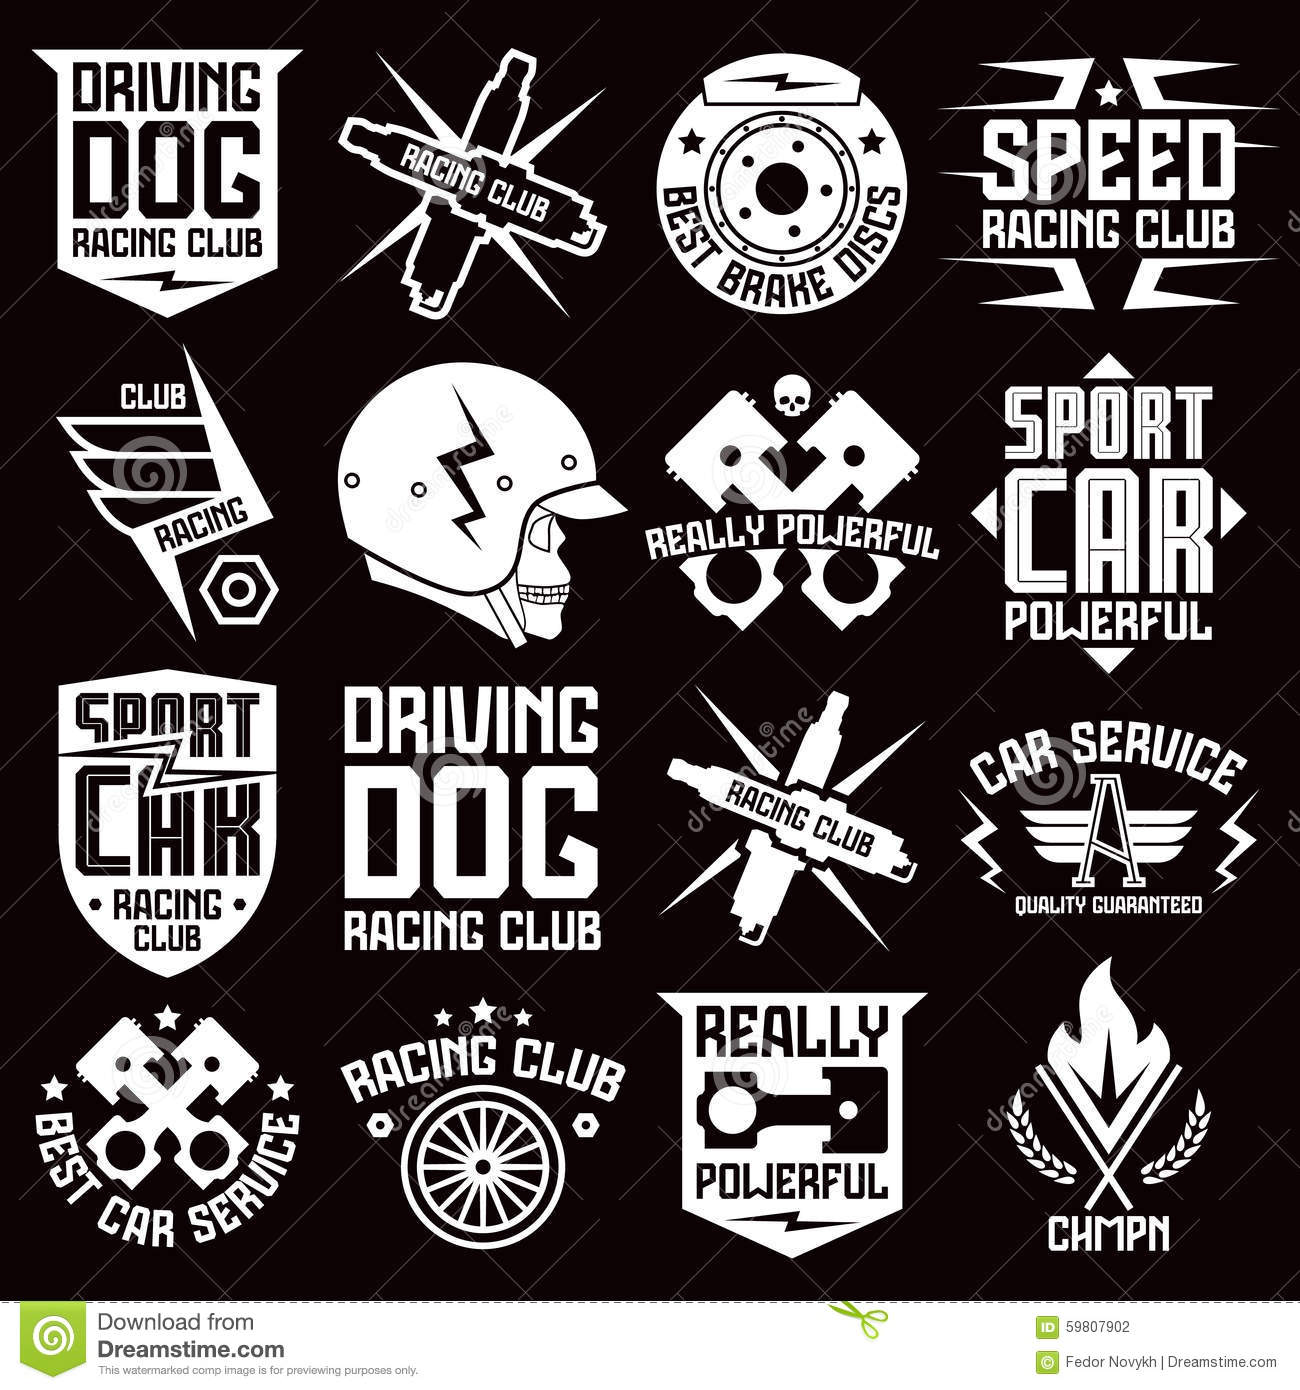 Graphic Design Stickers For Cars Kamos Sticker - Vinyl stickers on cars